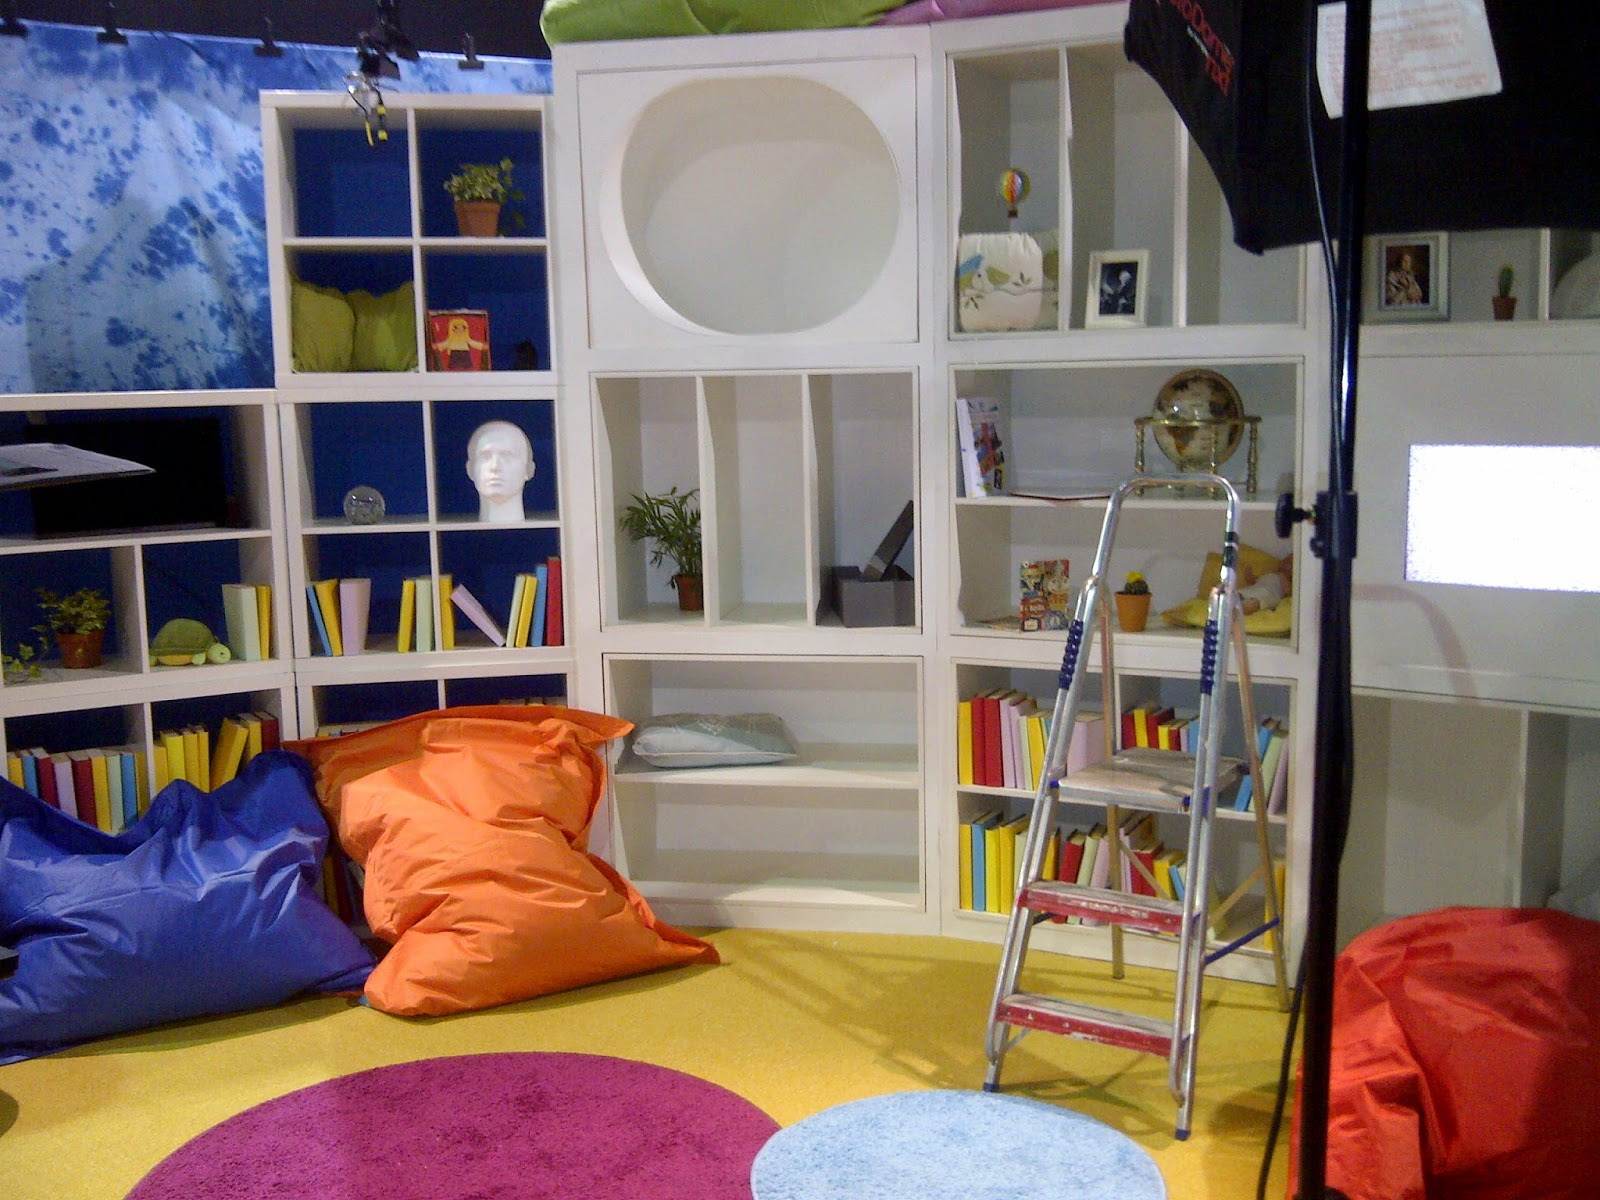 Set dressing childrens tv